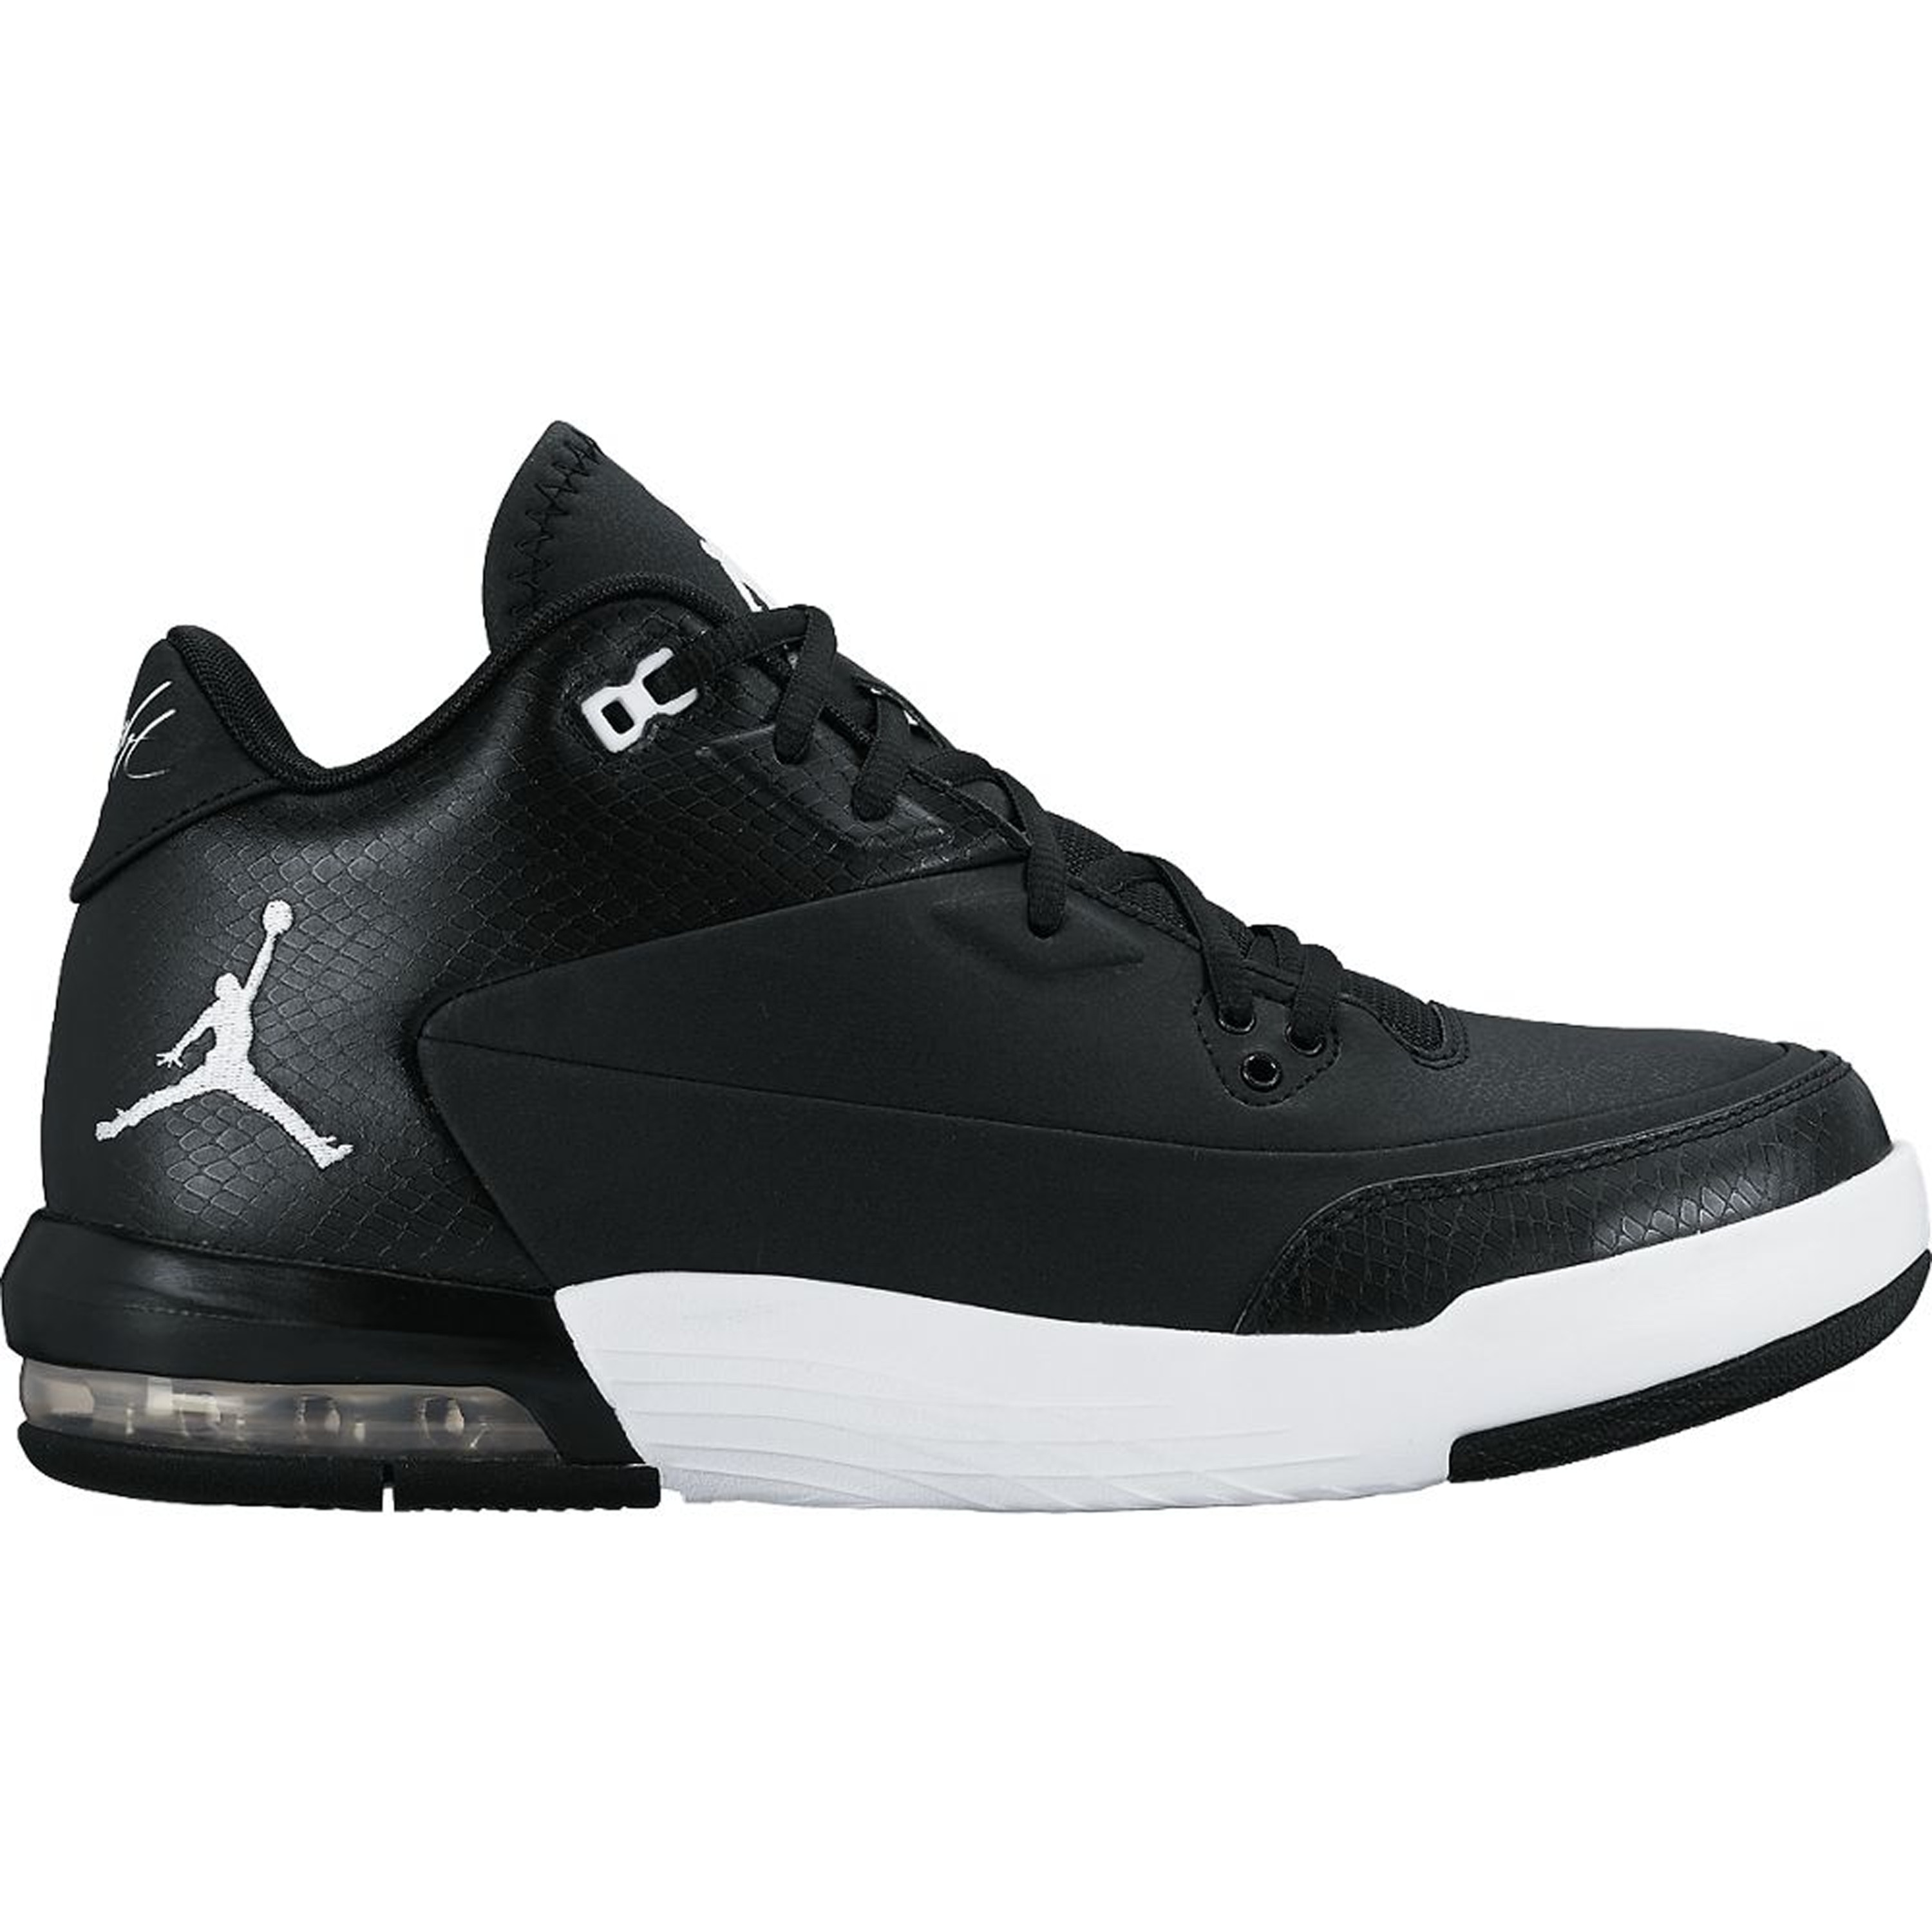 Jordan Flight Origin 3 Black White (820245-011)